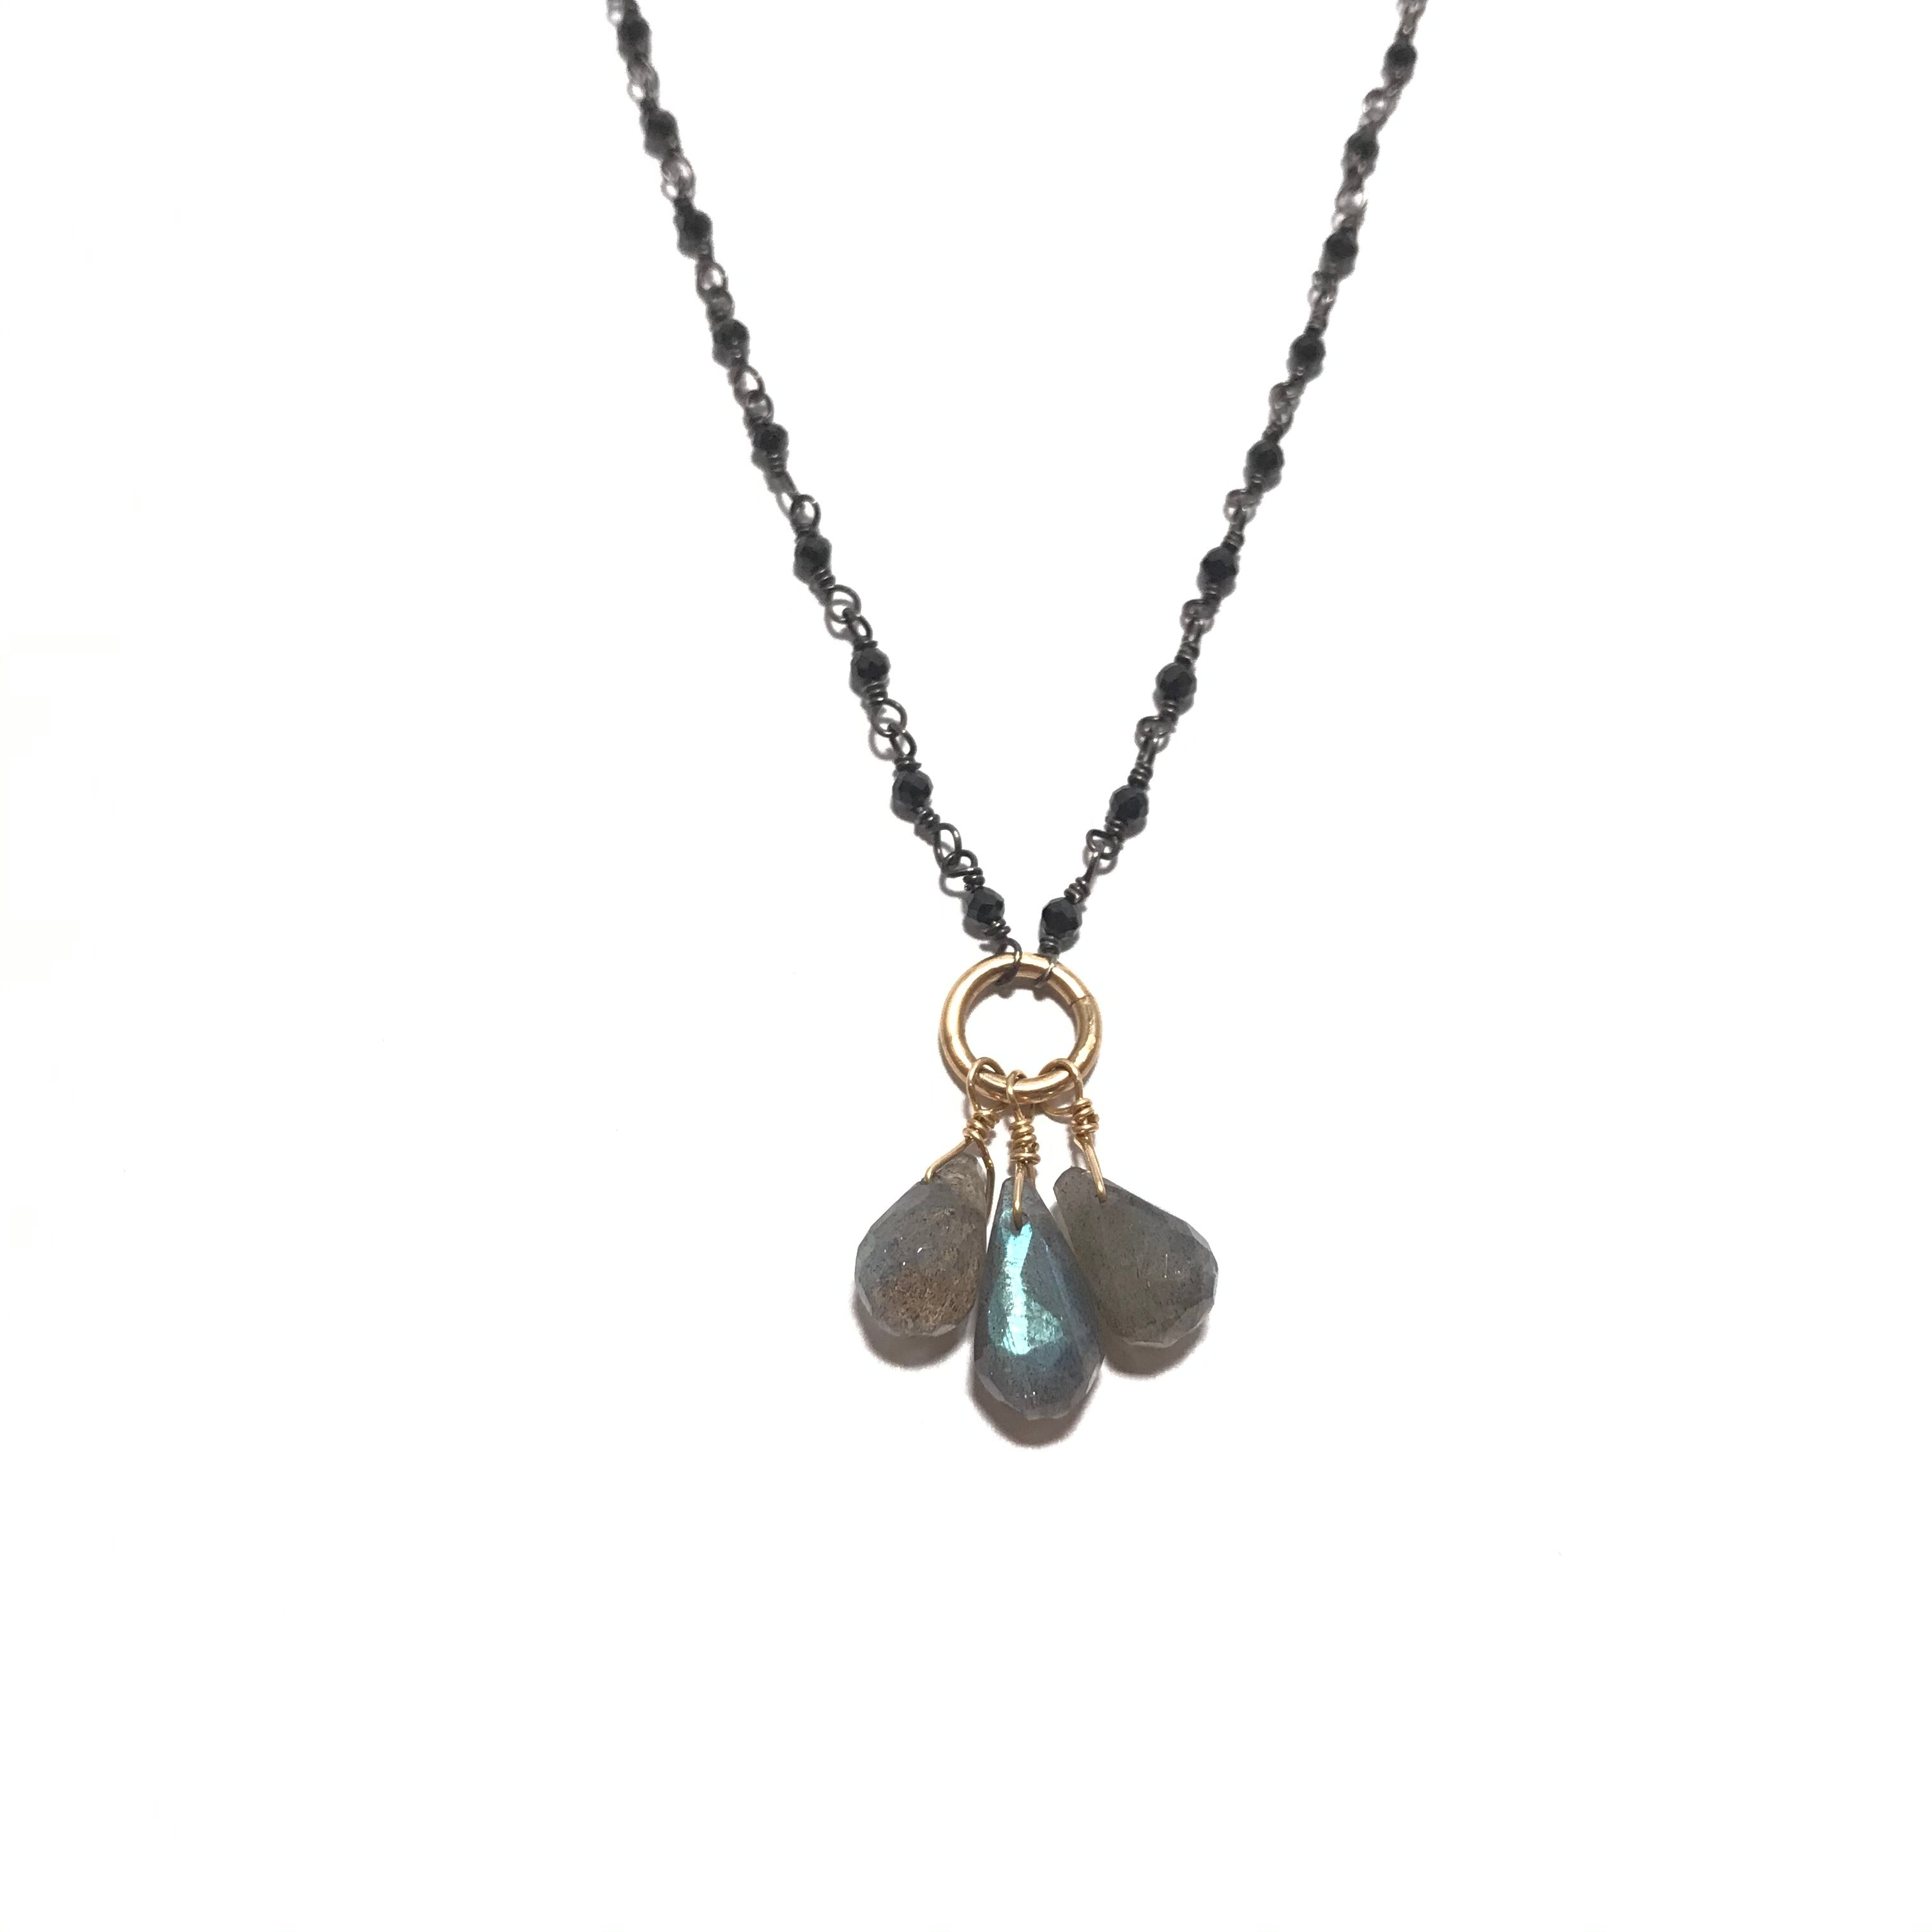 Something Blue Black Spinel and Labradorite Necklace